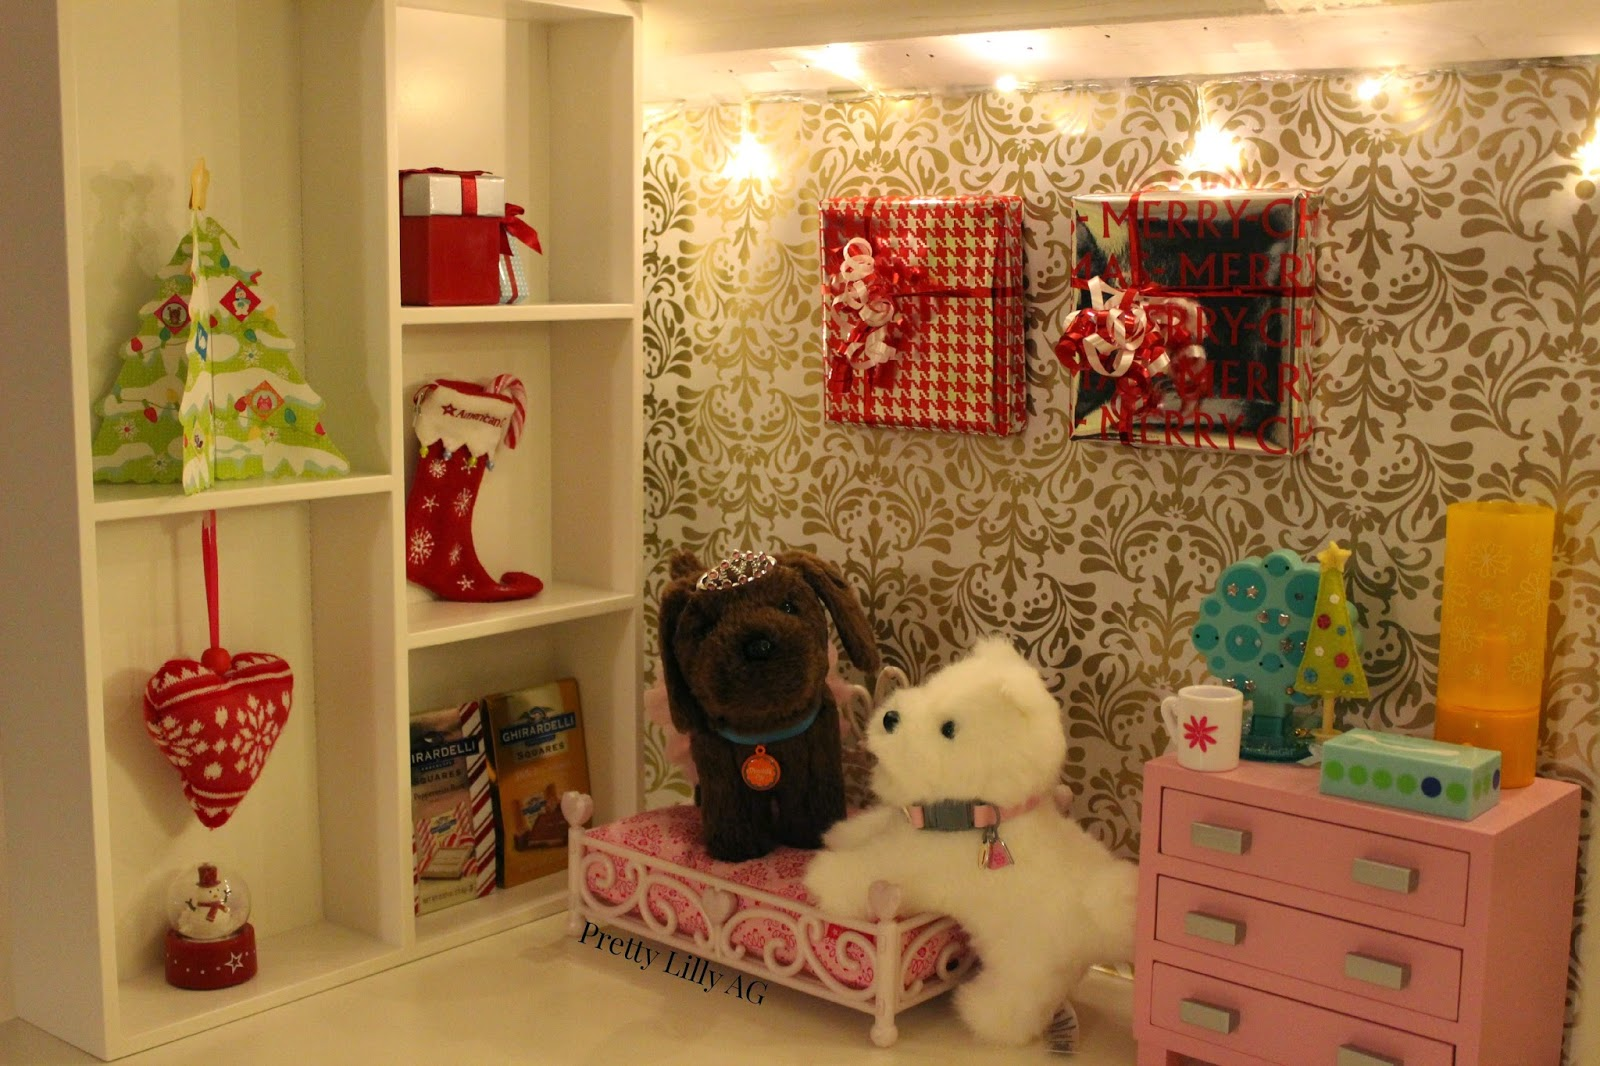 Christmas Decorations To Make For Your Bedroom : Pretty lilly an american girl christmas doll bedroom